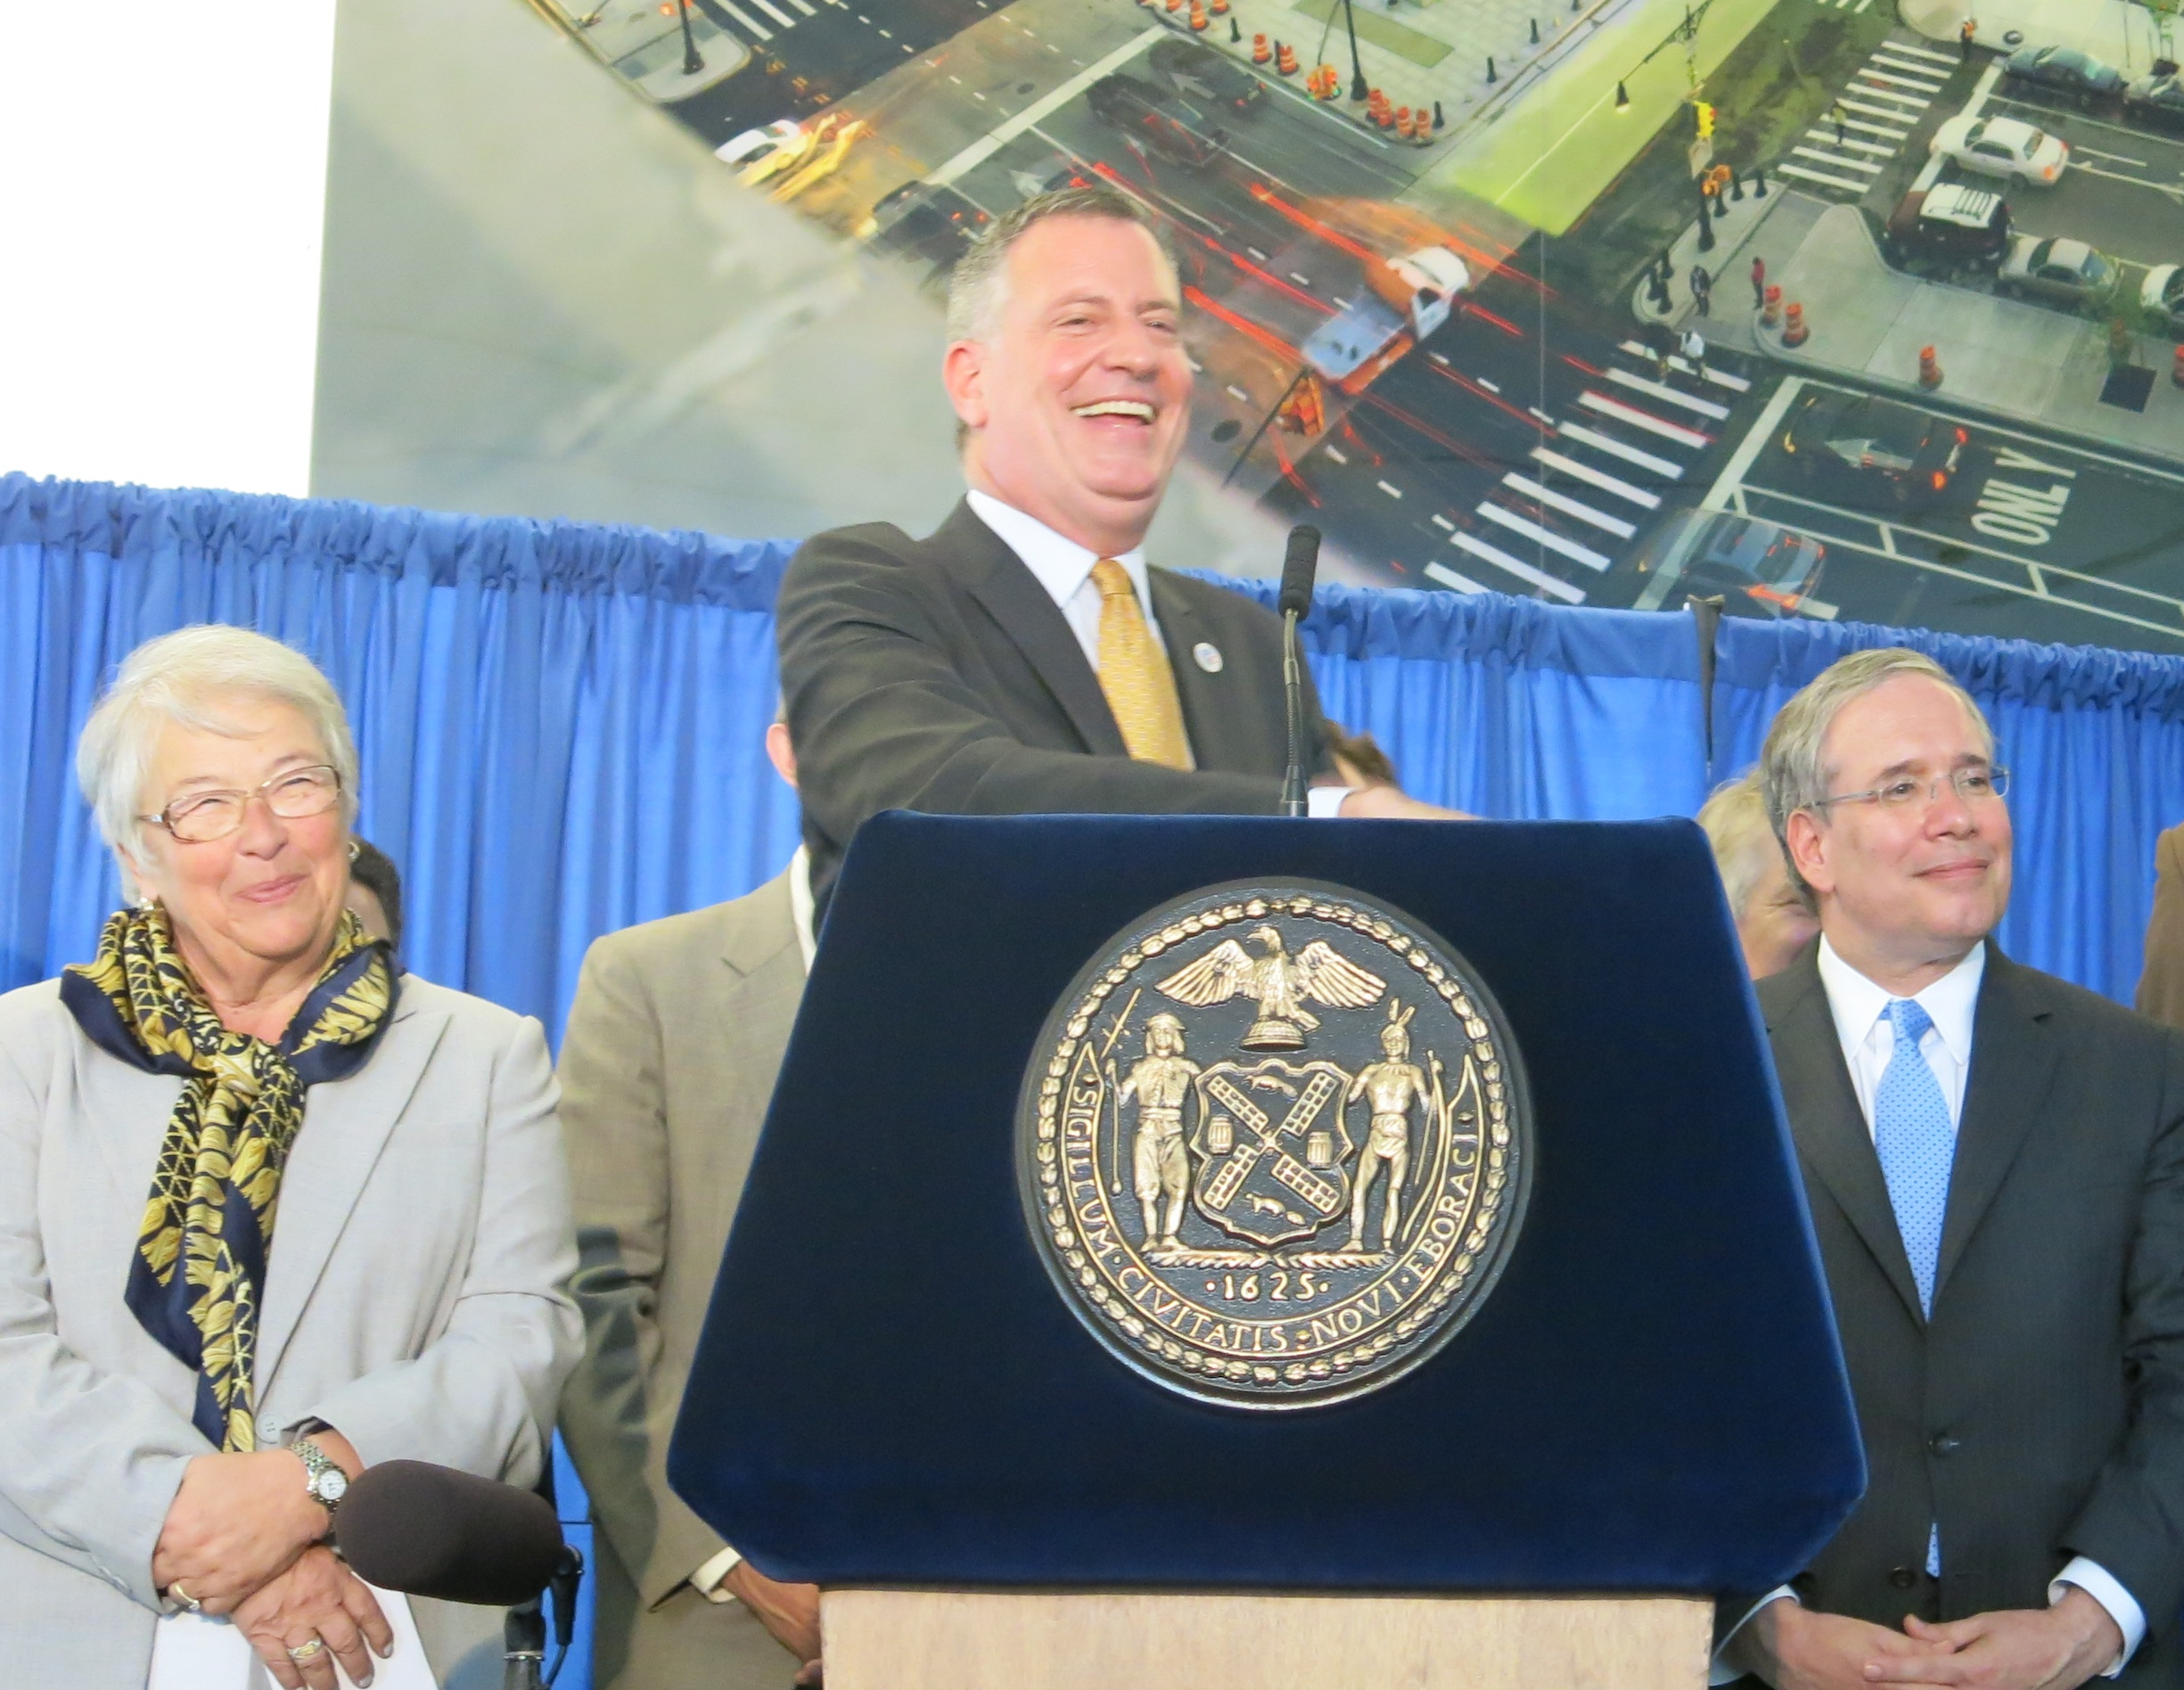 Mayor Bill de Blasio announced how the city would spend an additional $23 million in arts funding at the Bronx Museum of the Arts Tuesday.